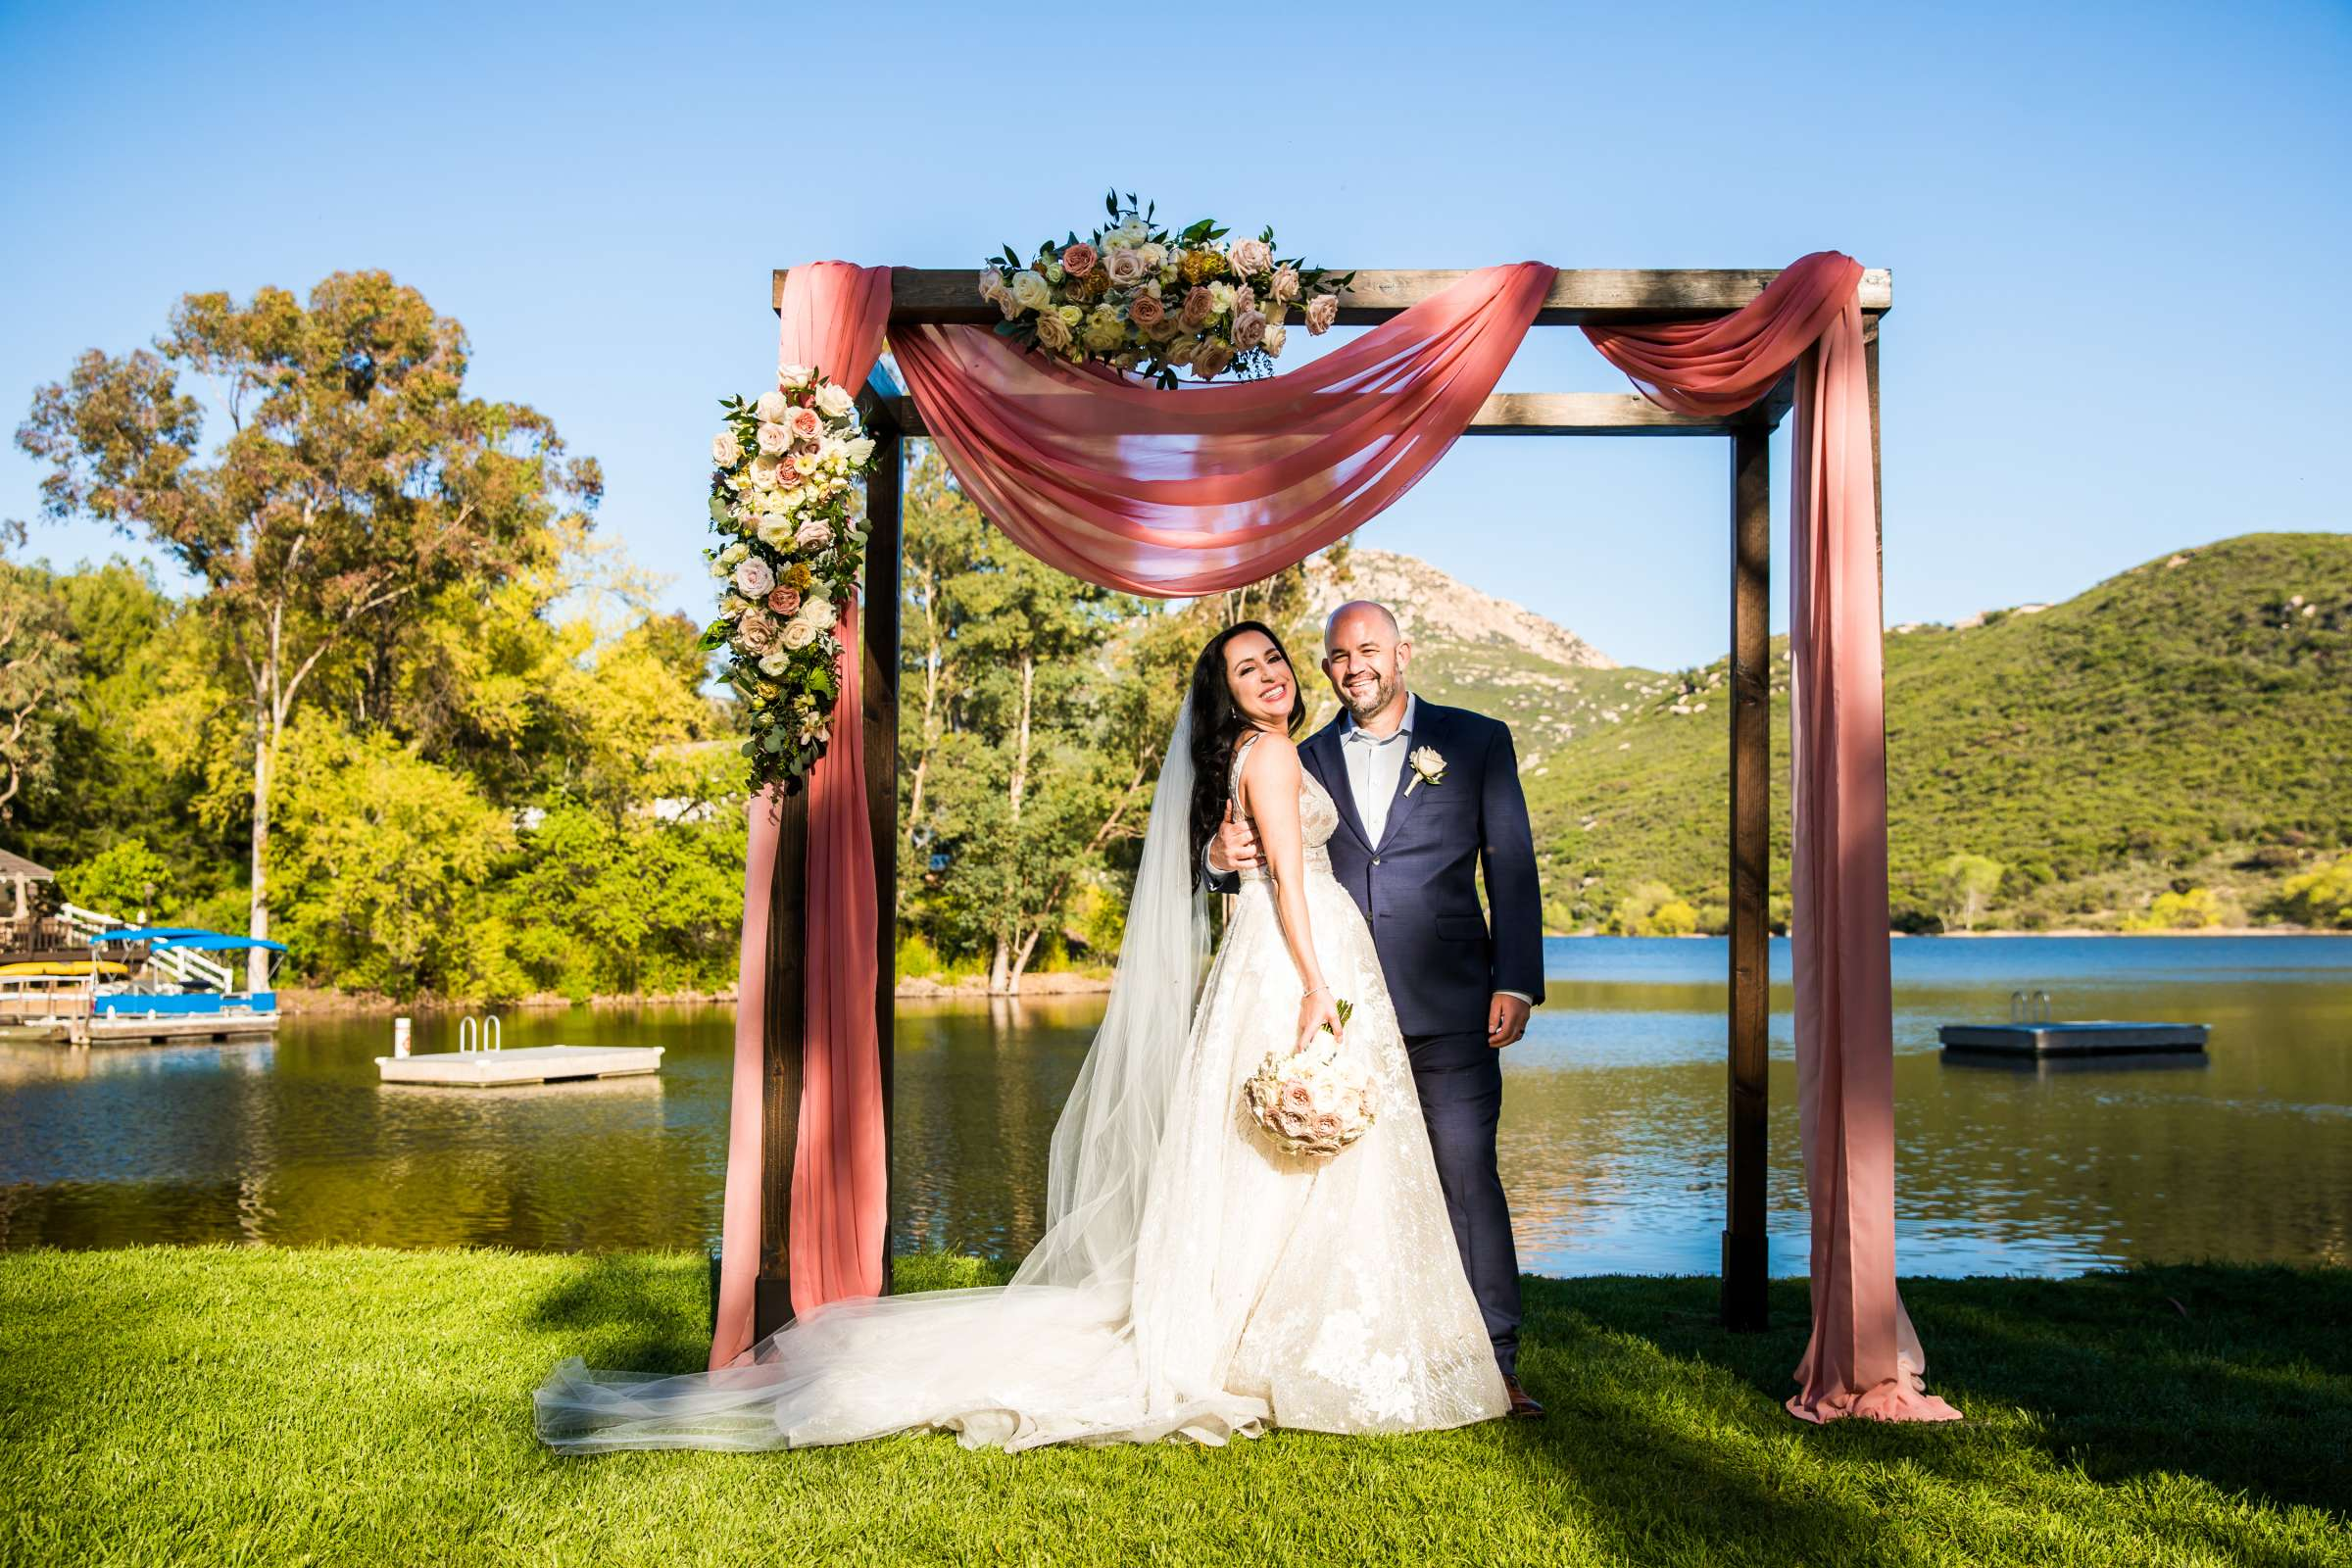 Wedding coordinated by Always Flawless Productions, Catherine and Scott Wedding Photo #532285 by True Photography